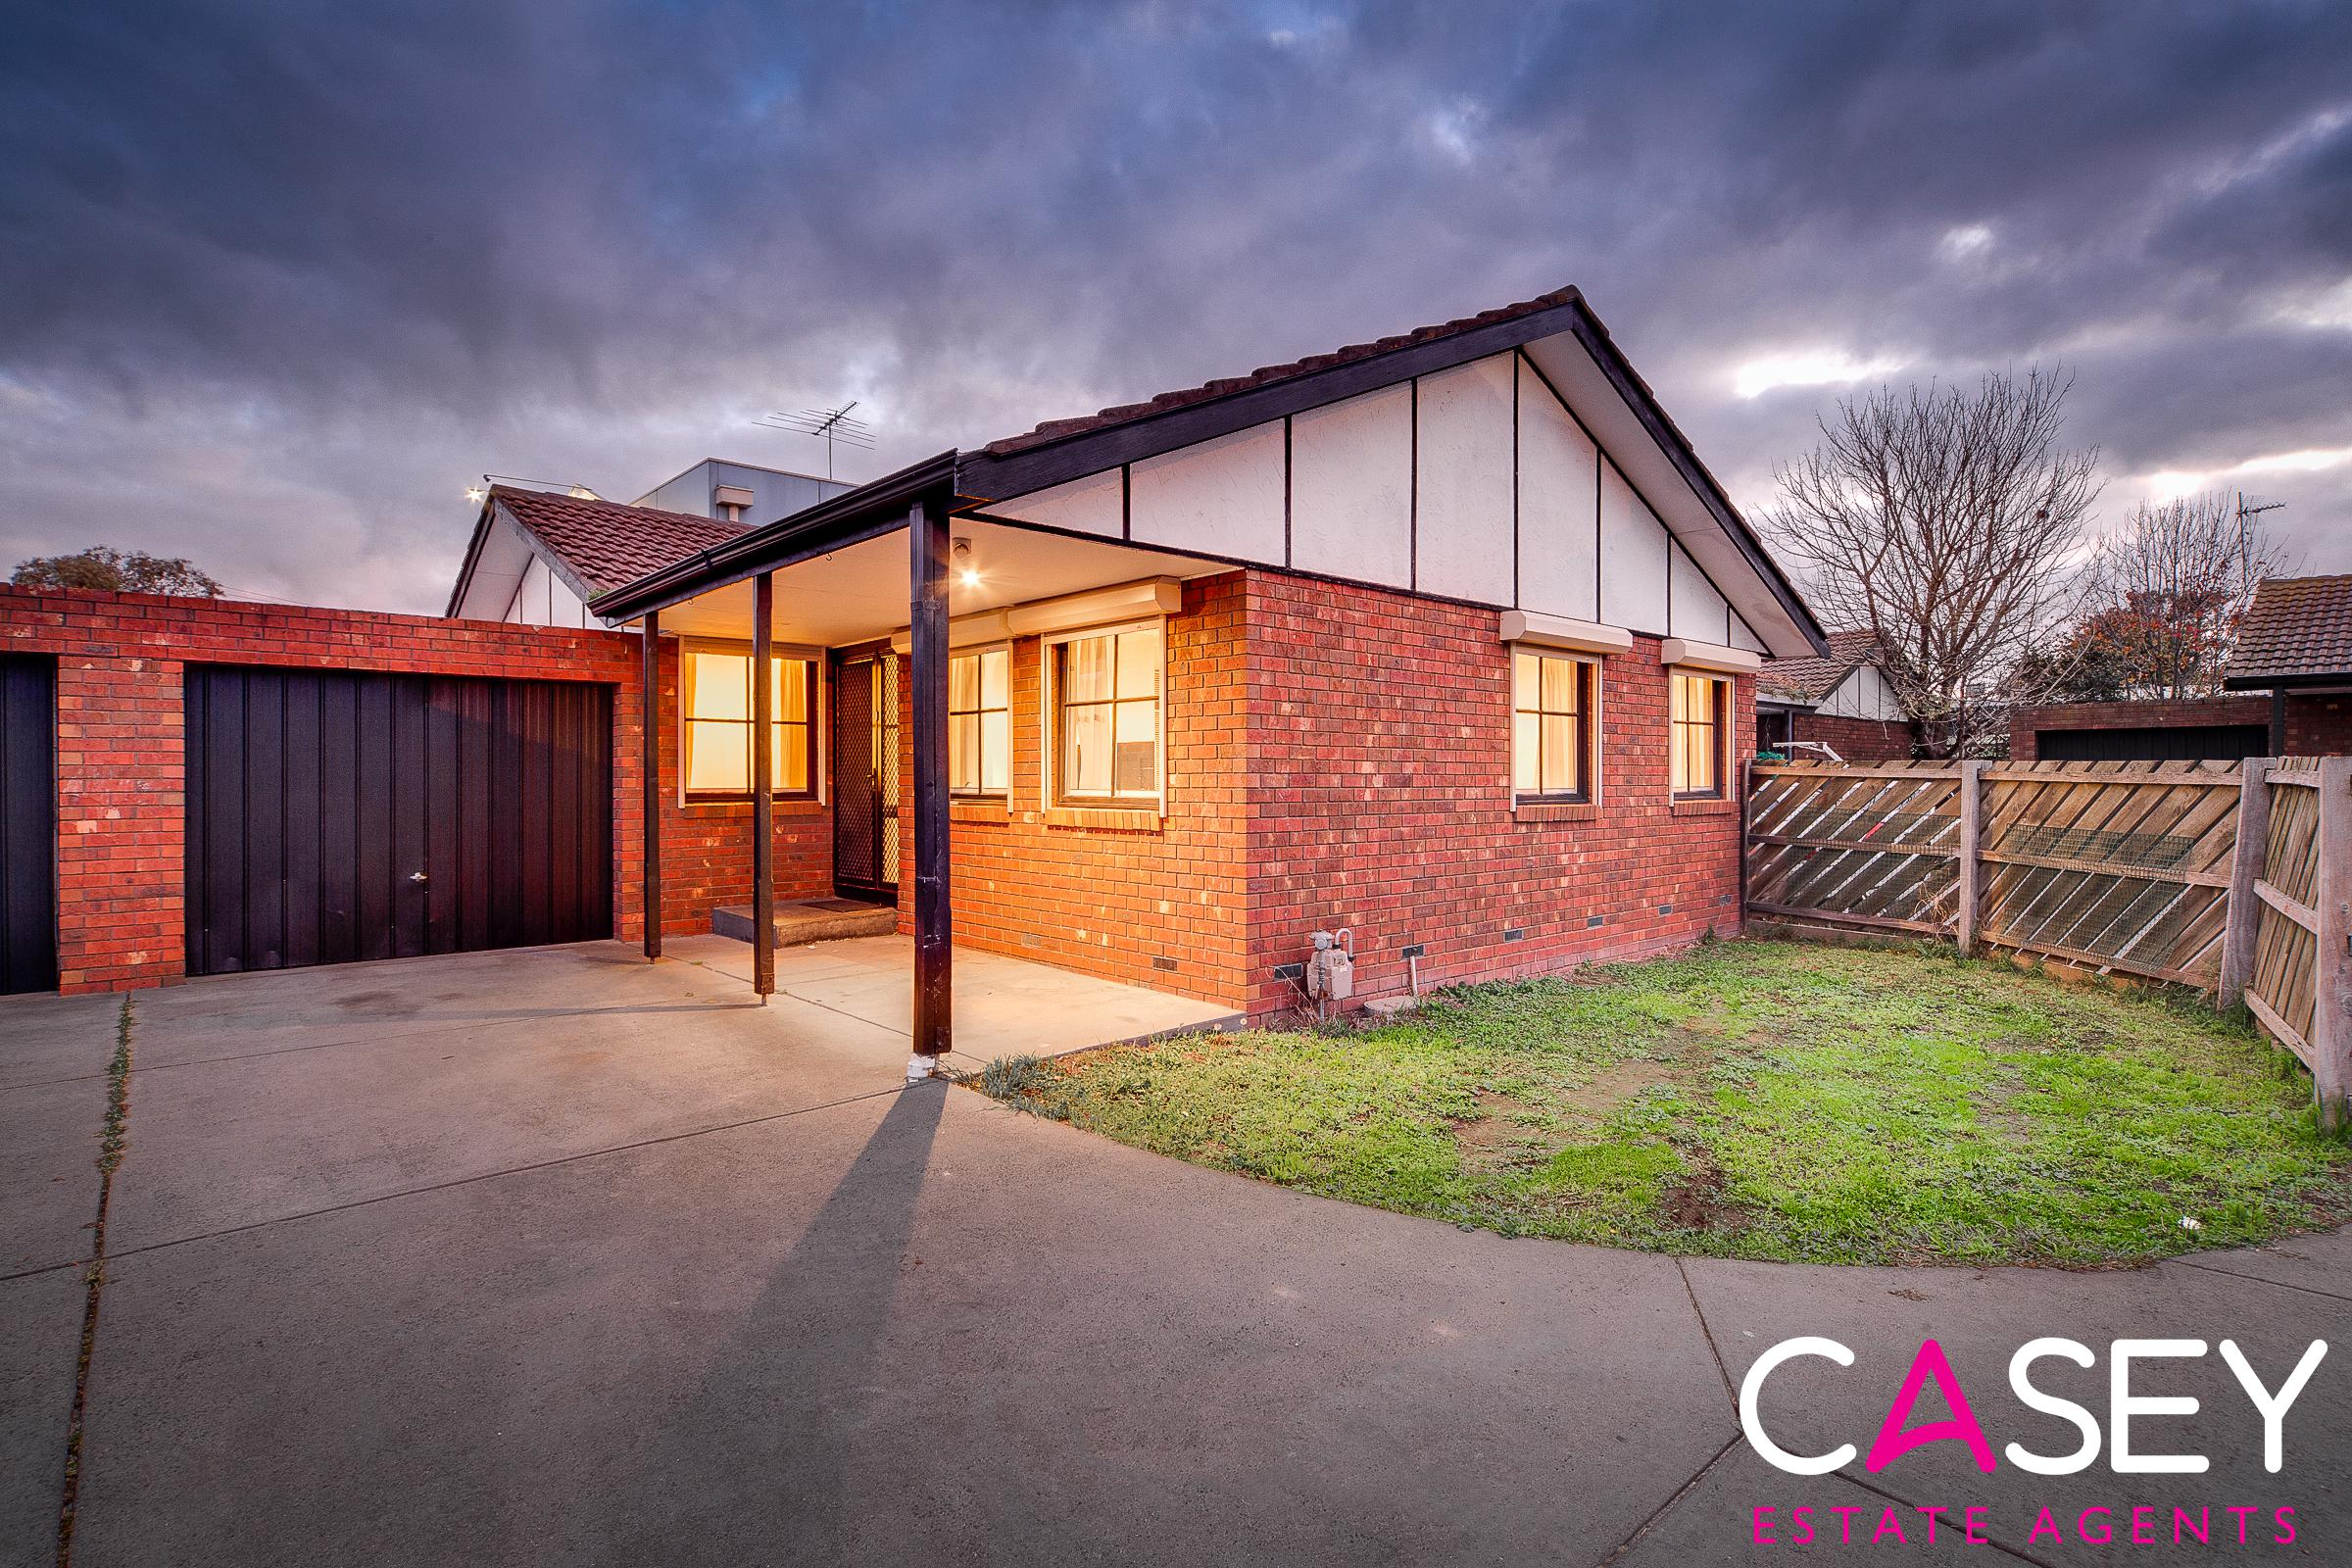 6/203-205 South Gippsland Hwy, CRANBOURNE, VIC, 3977 - Image